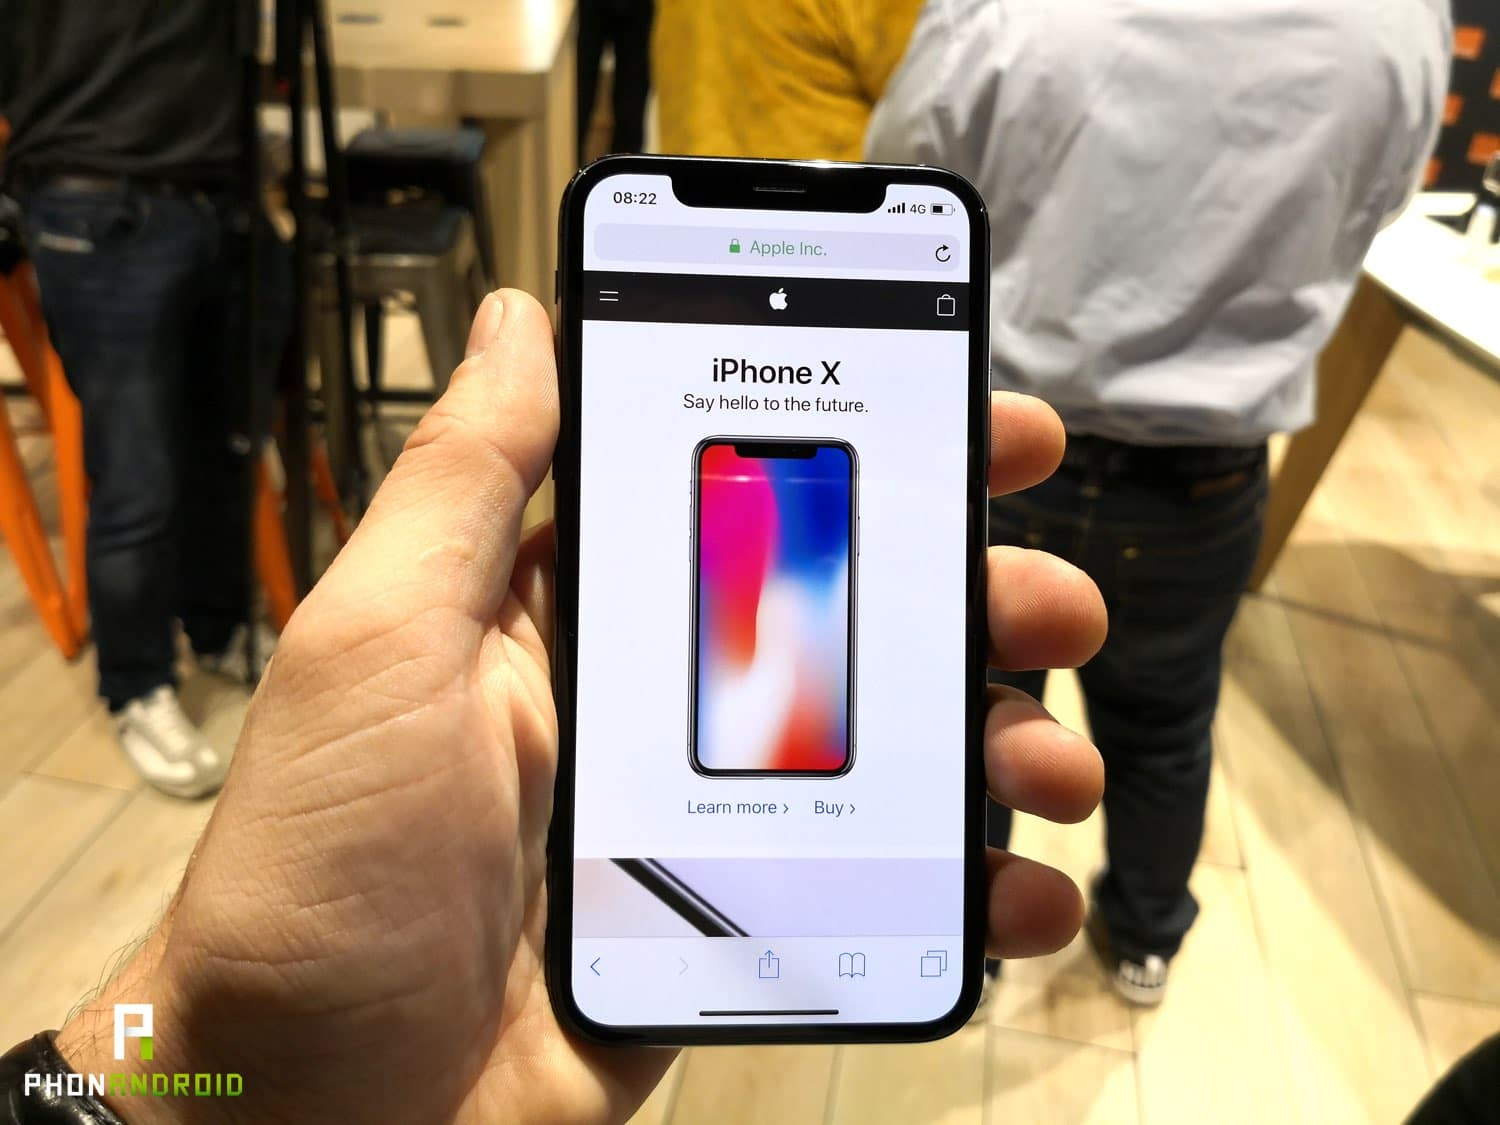 iphone x prise en main ecran encoche